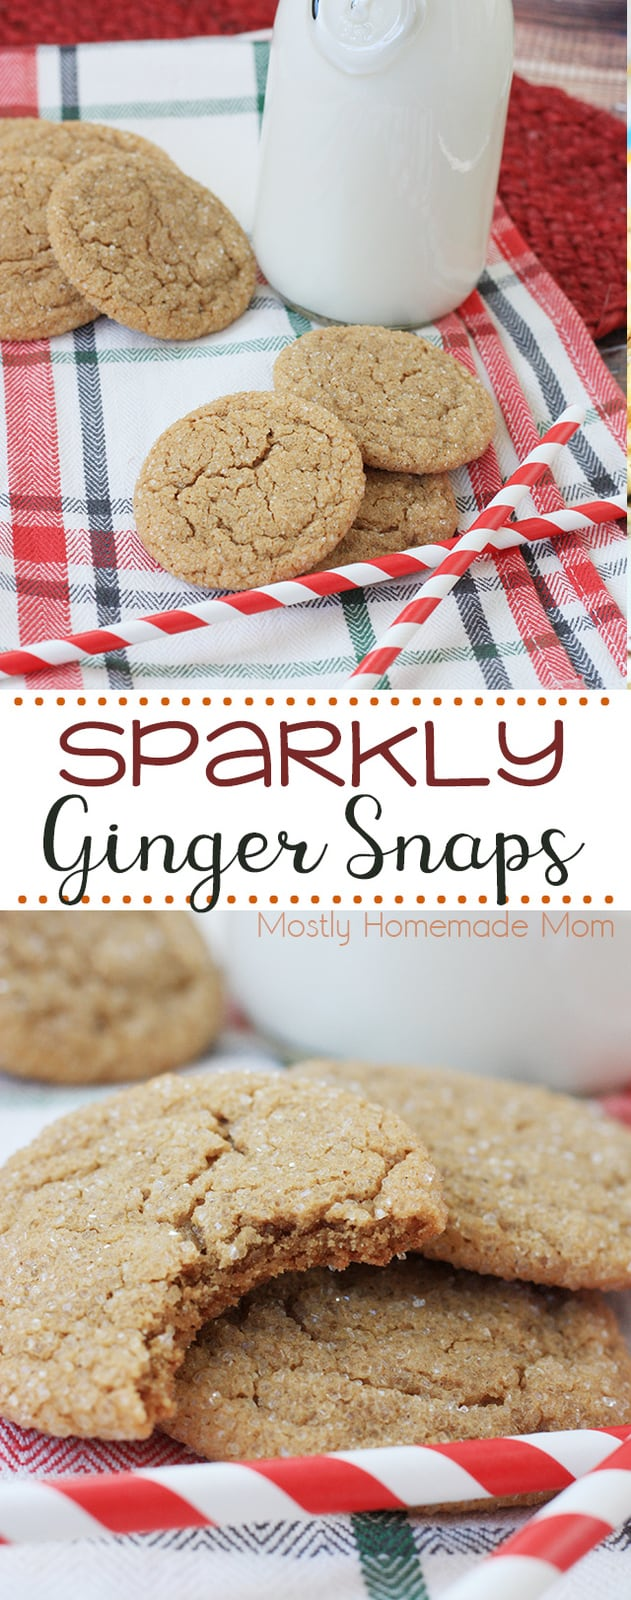 This Ginger Snaps Recipe is a family favorite during Christmas! With real molasses, ground ginger, cloves, and cinnamon - these will be the perfect addition to your Christmas cookie tray this year! #cookies #Christmas #recipe #dessert